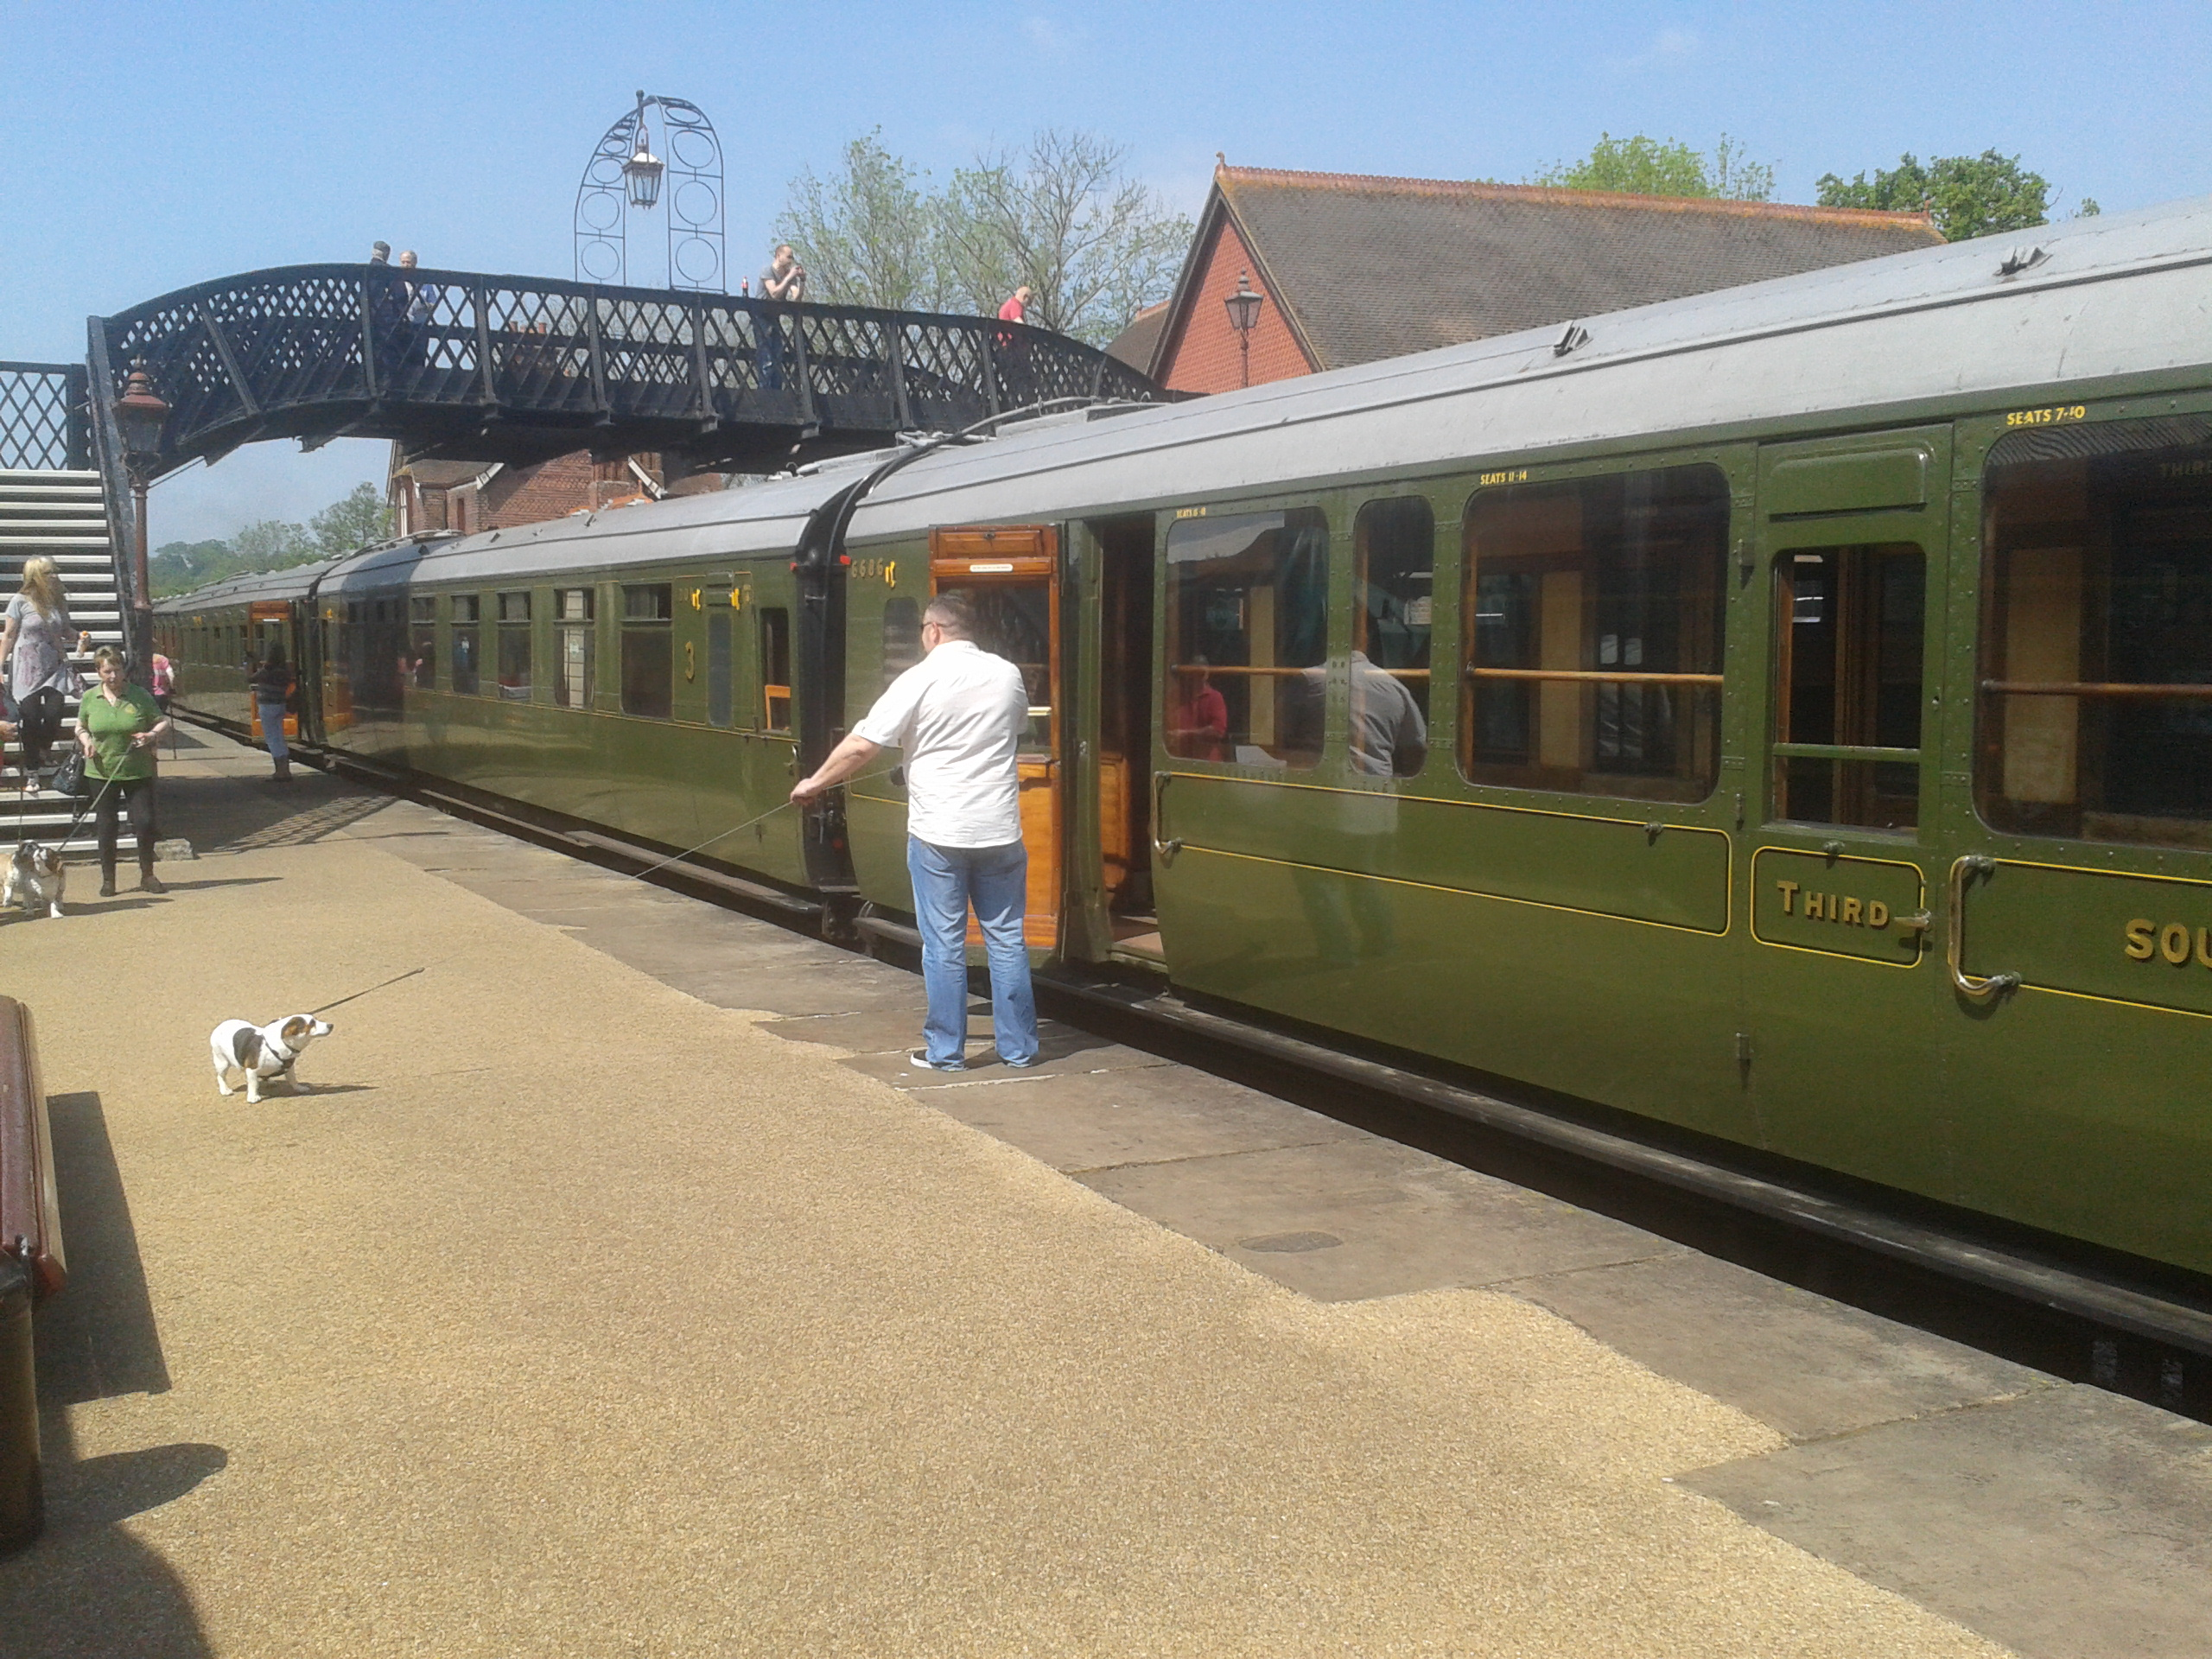 SR Maunsell carriages 1